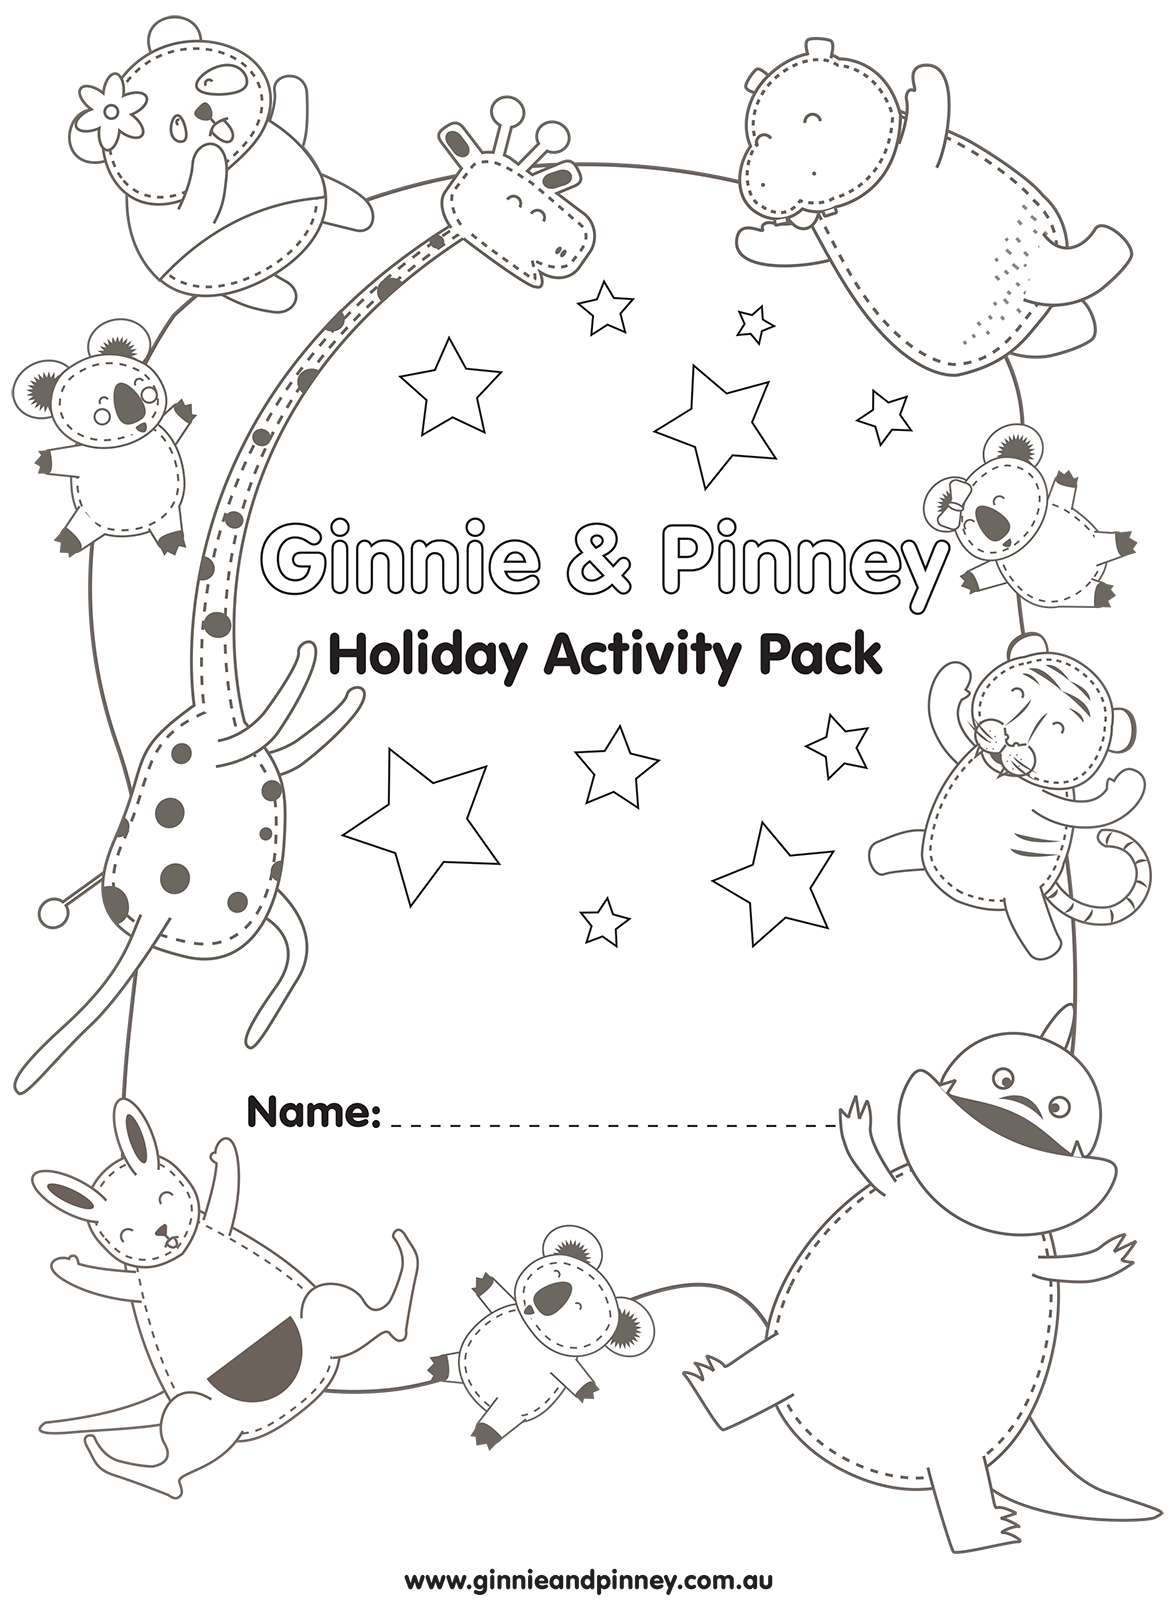 Holiday_Activity_Pack_2021-1